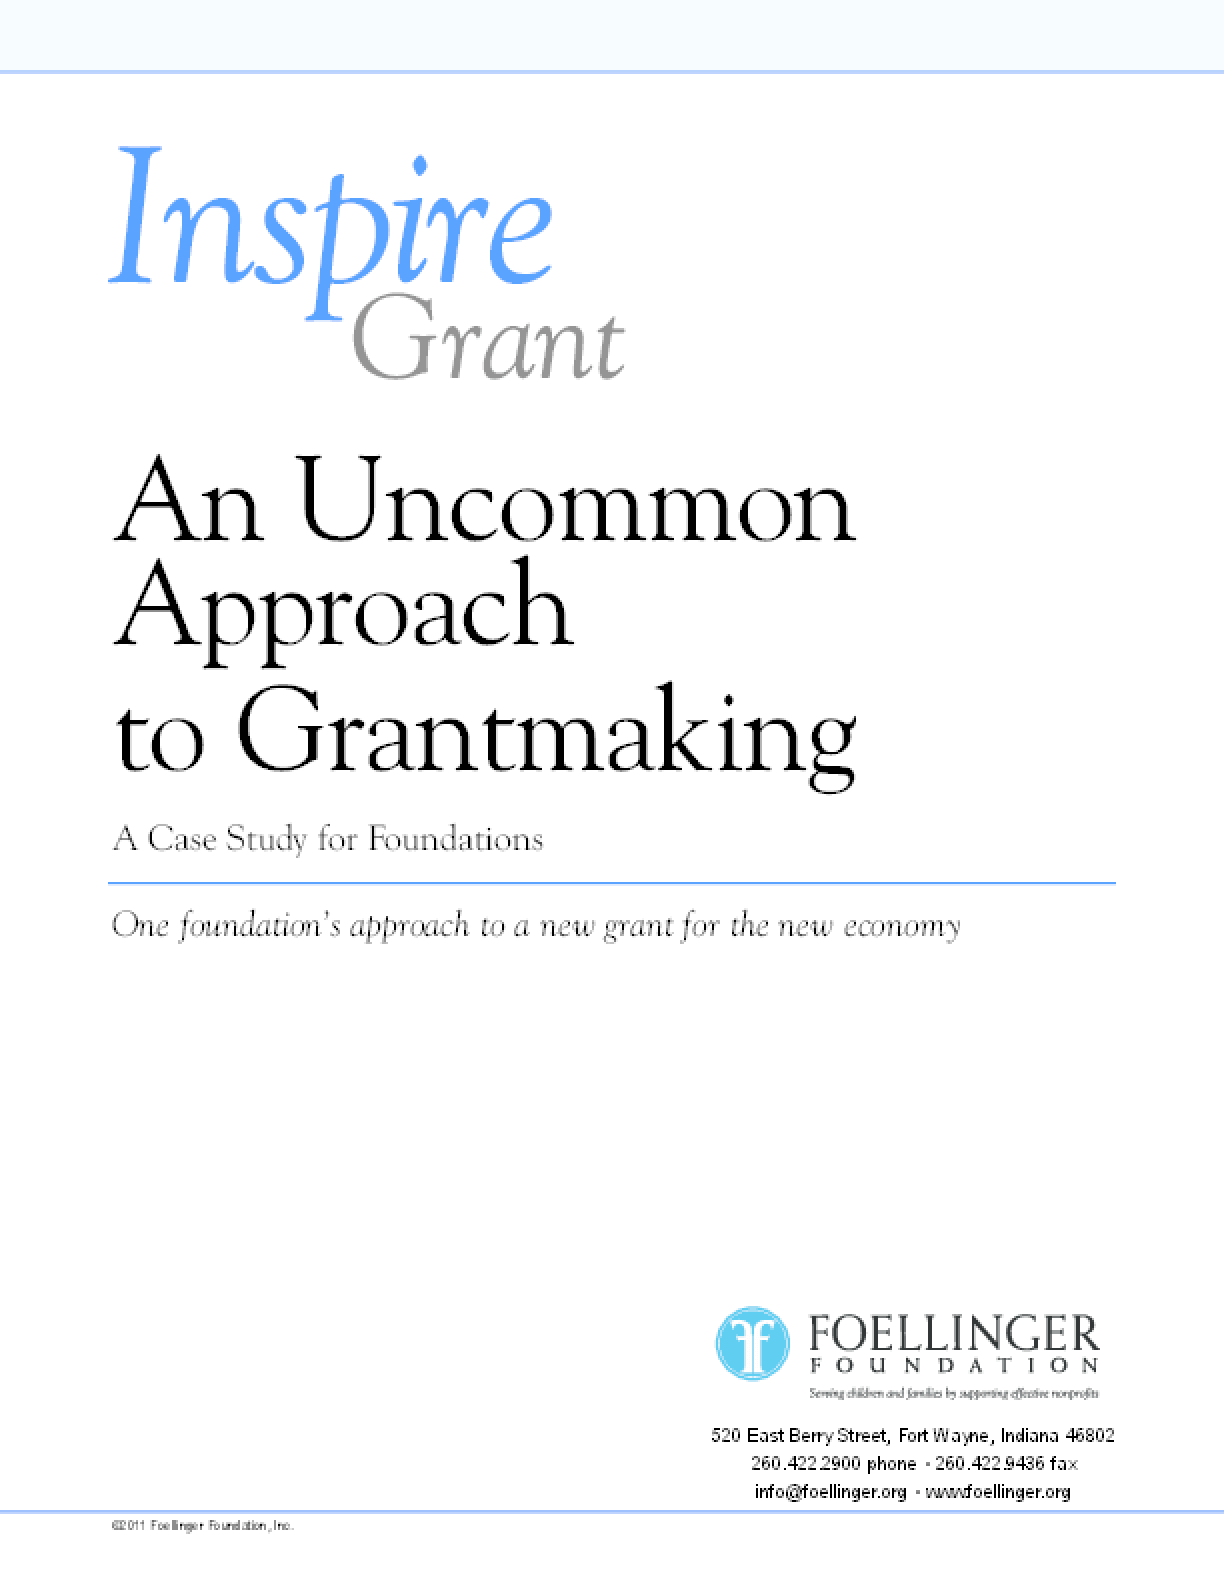 Inspire Grant: An Uncommon Approach to Grantmaking